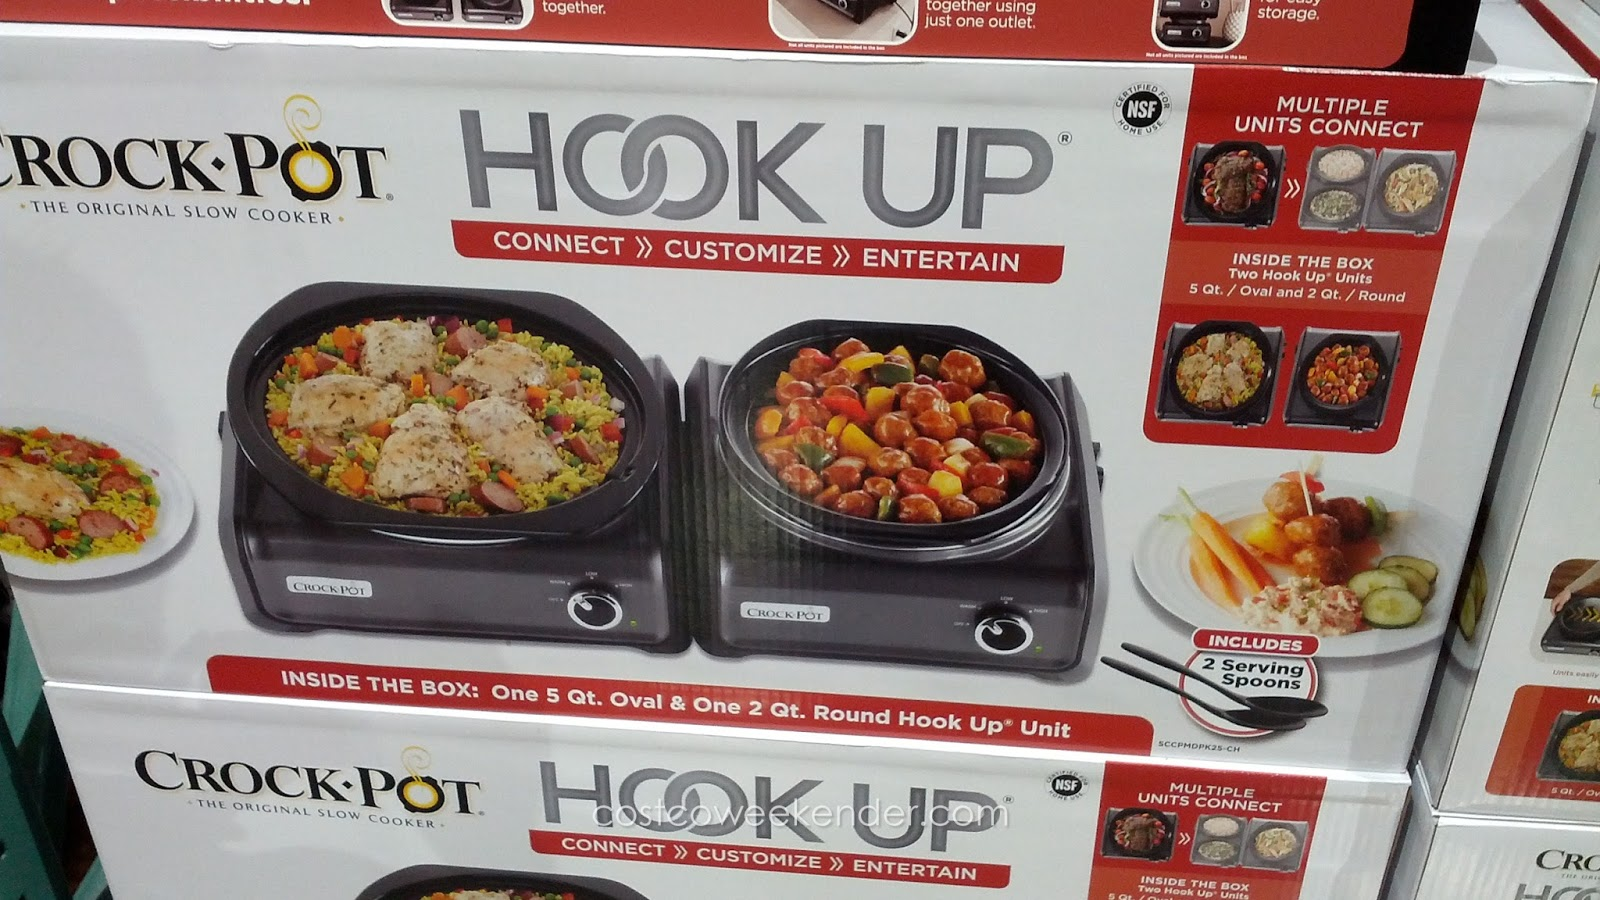 Entertain Guests With The Crock Pot Hook Up